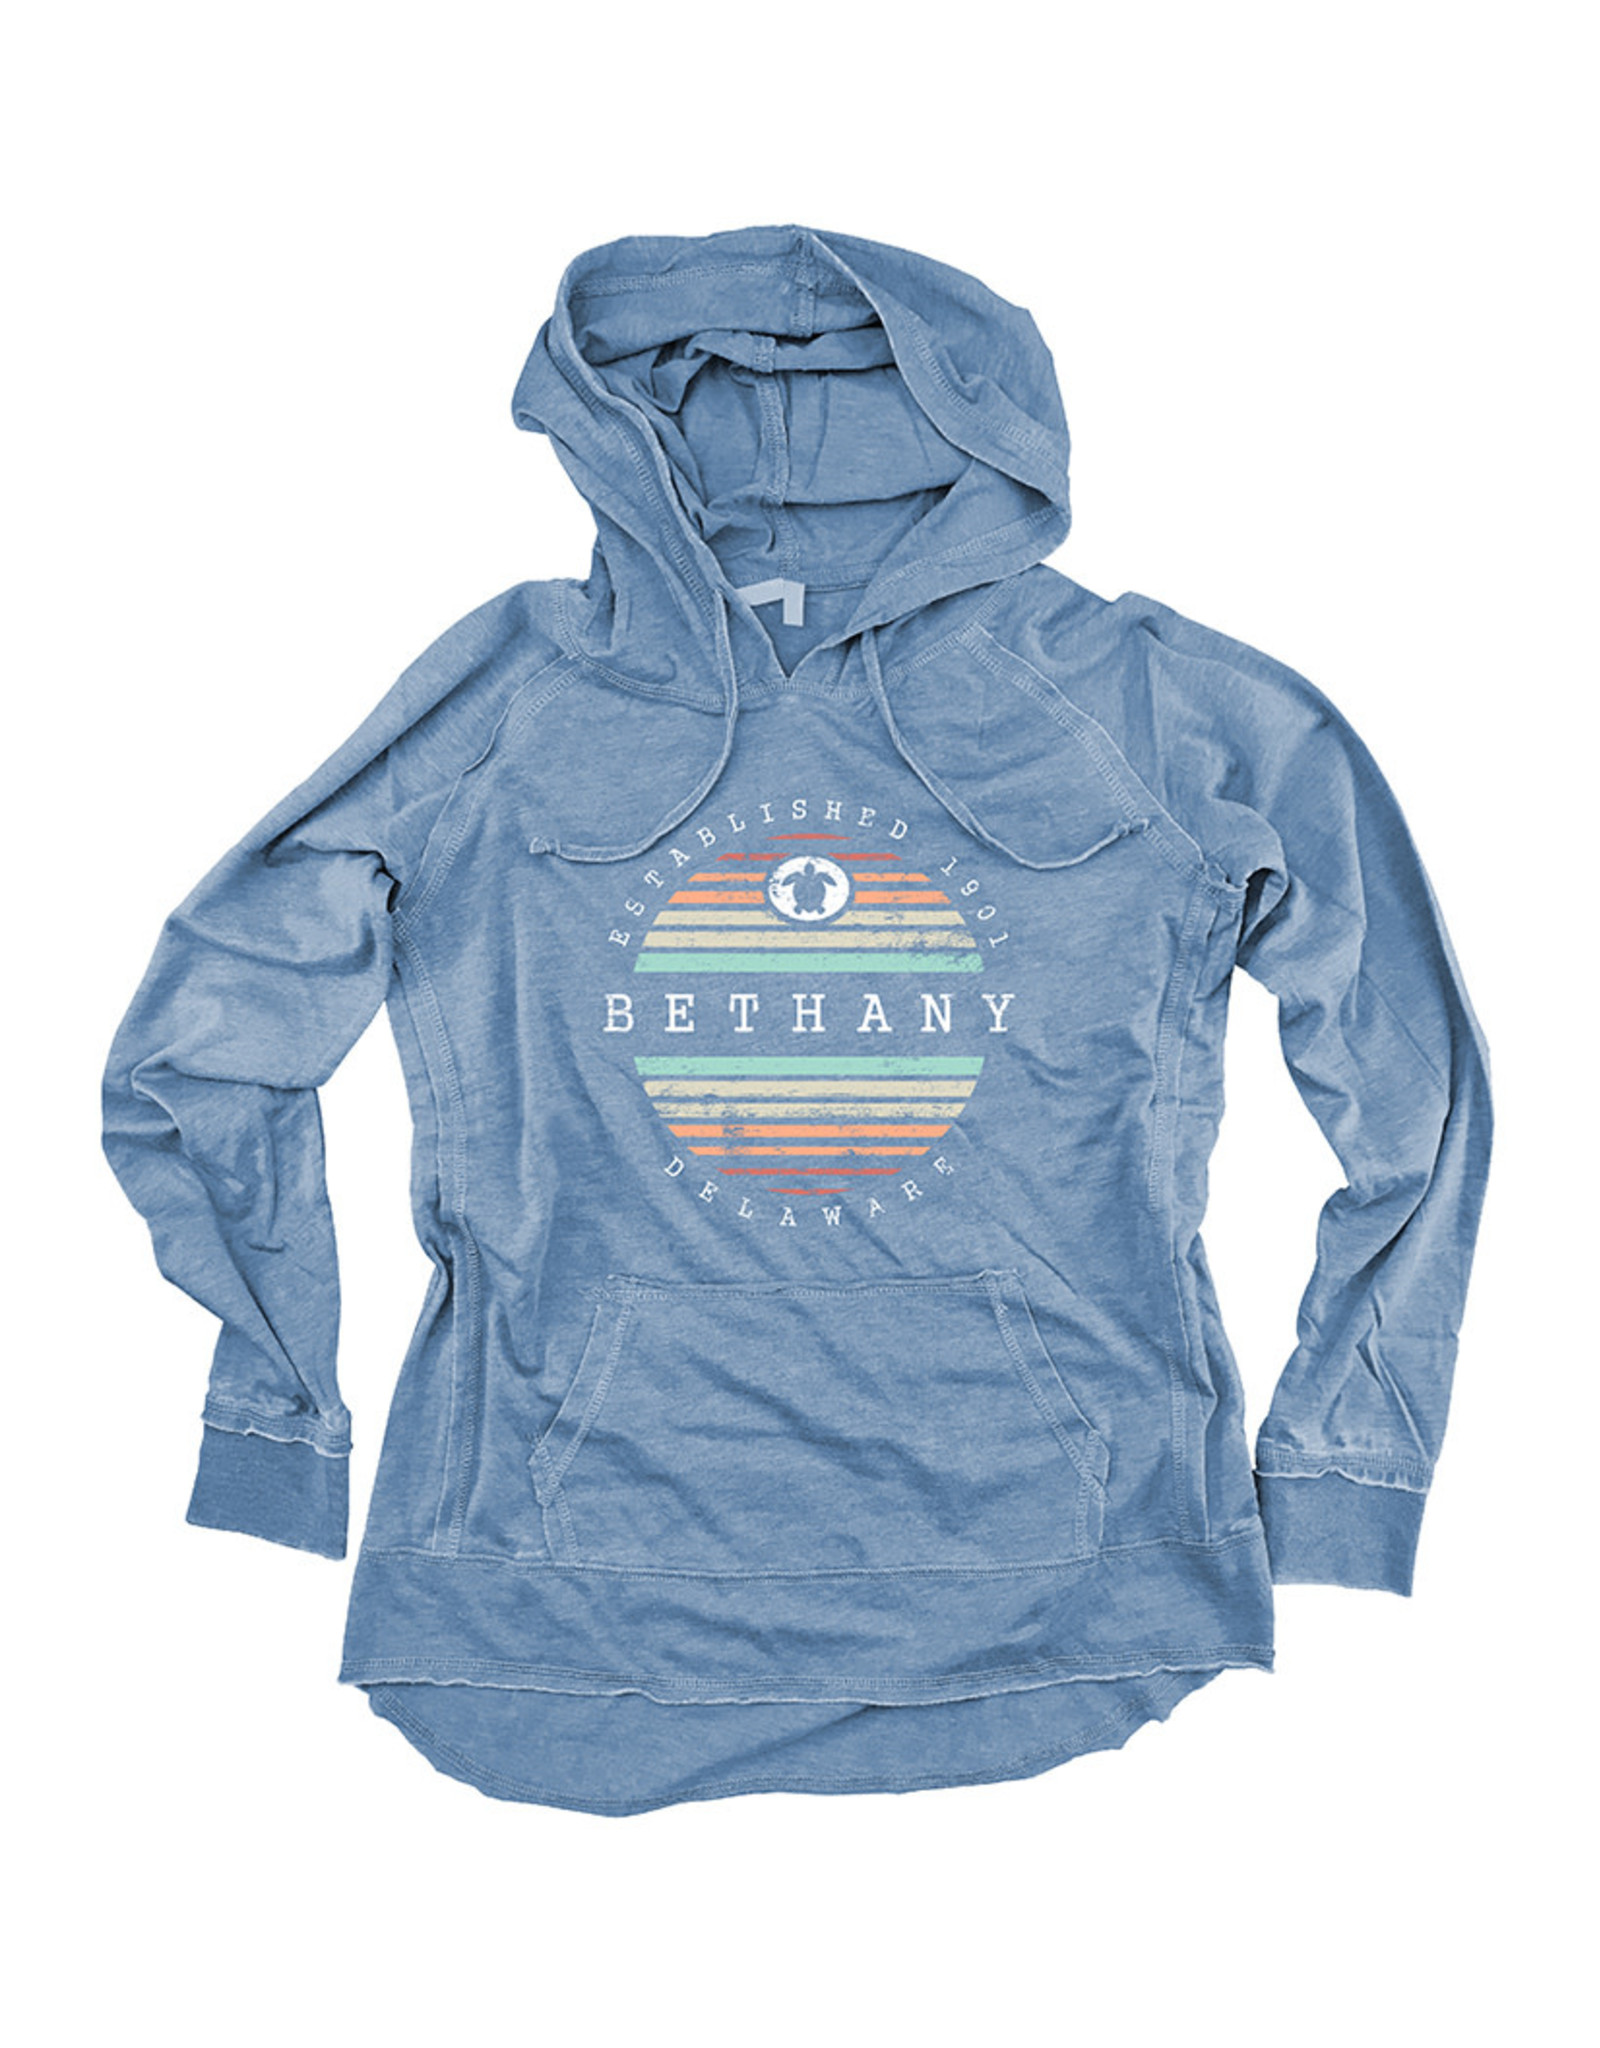 OUT OF HAND BETHANY LIGHTWEIGHT WOMENS HOODIE INDIGO STRIPE TURTLE